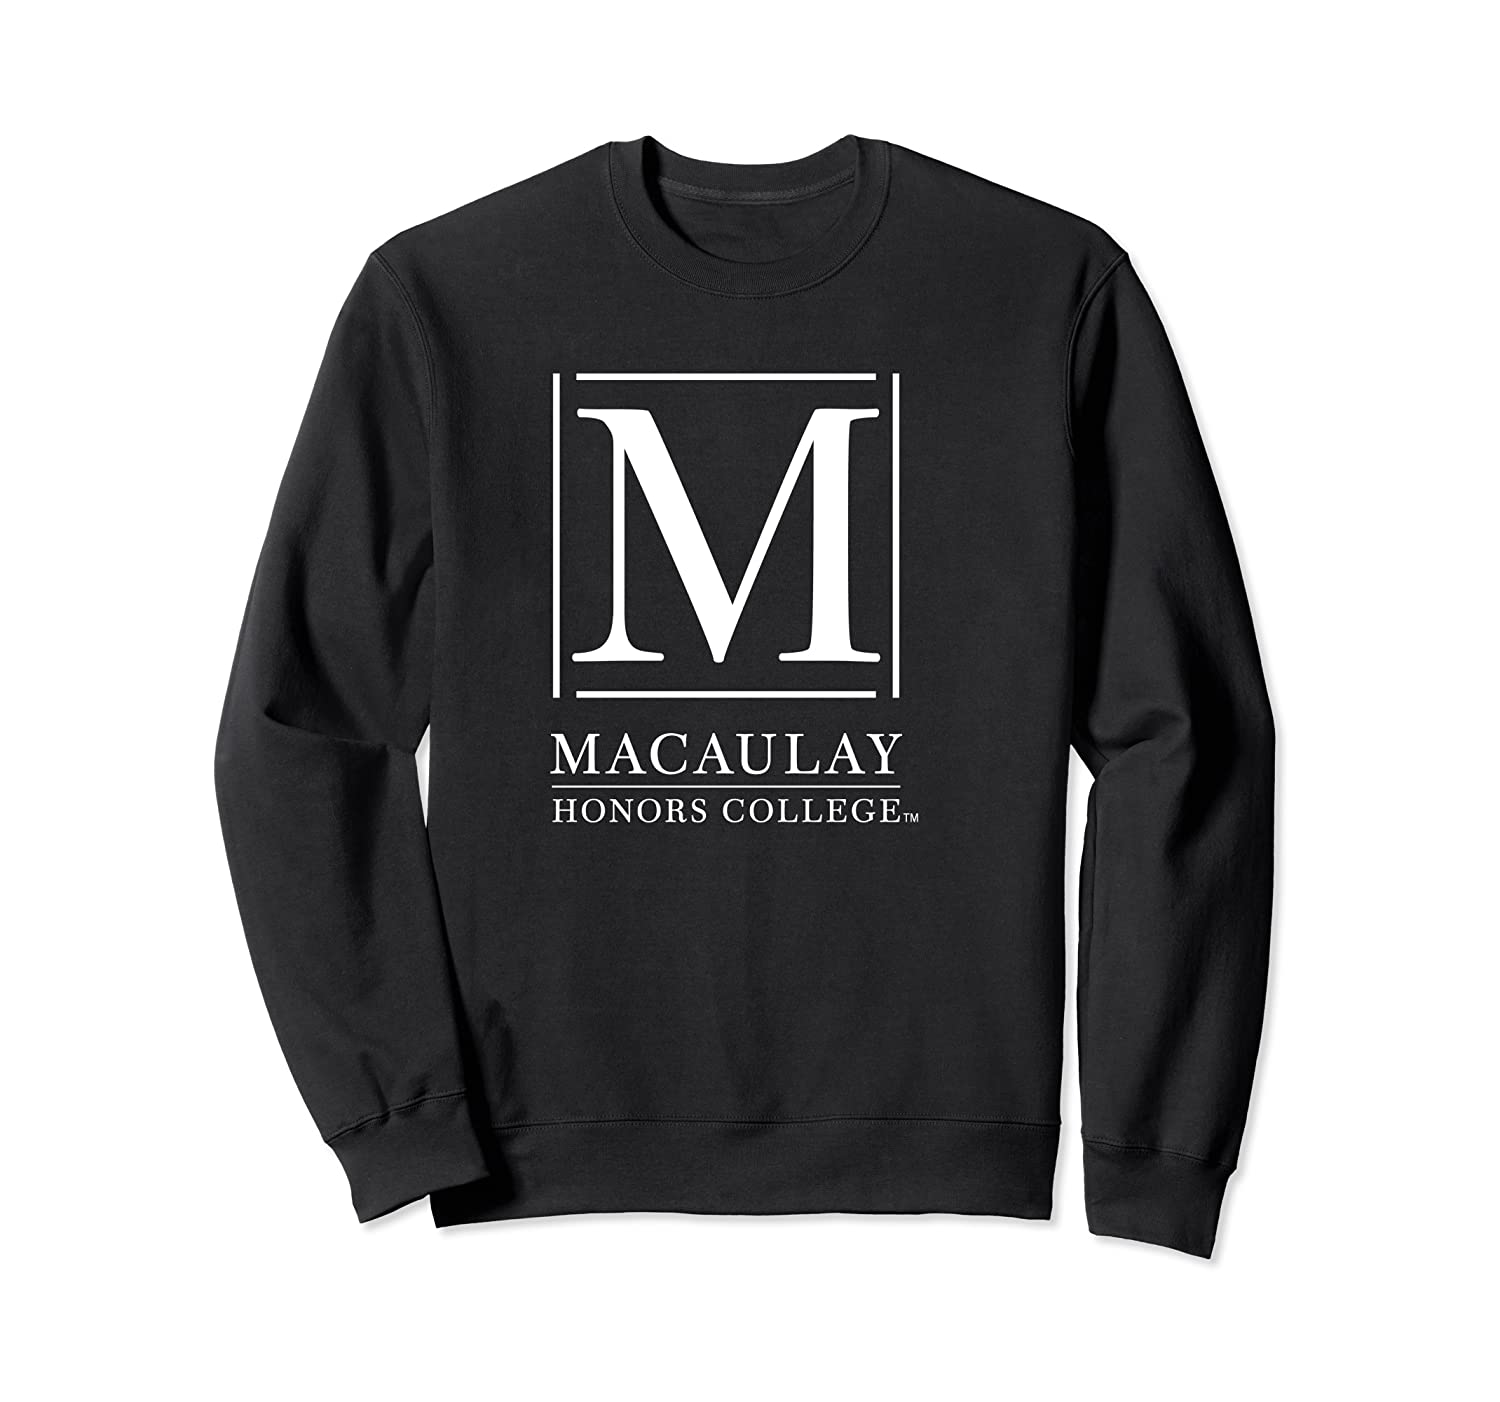 Macaulay Honors College Mountain Lions Ppmhc02 Shirts Crewneck Sweater